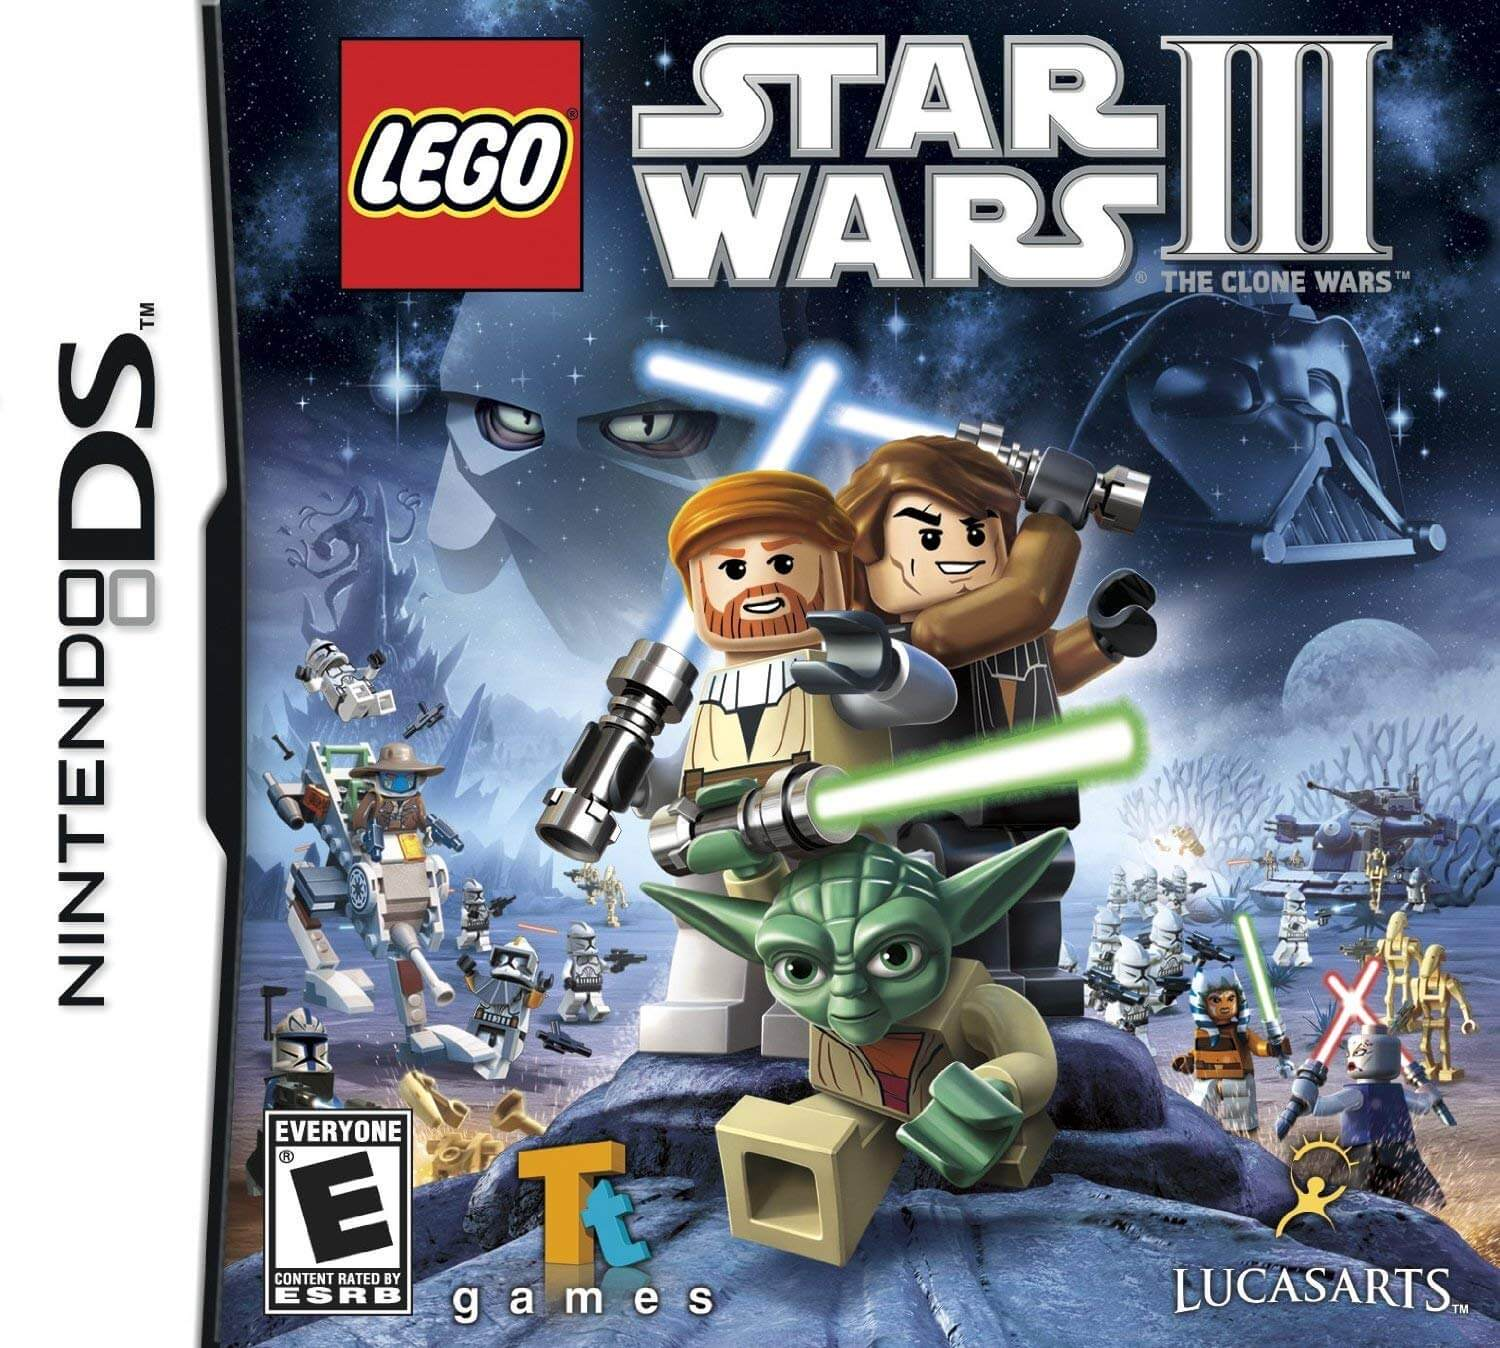 Lego Star Wars Iii The Clone Wars 3d 3ds Rom Cia Free Download